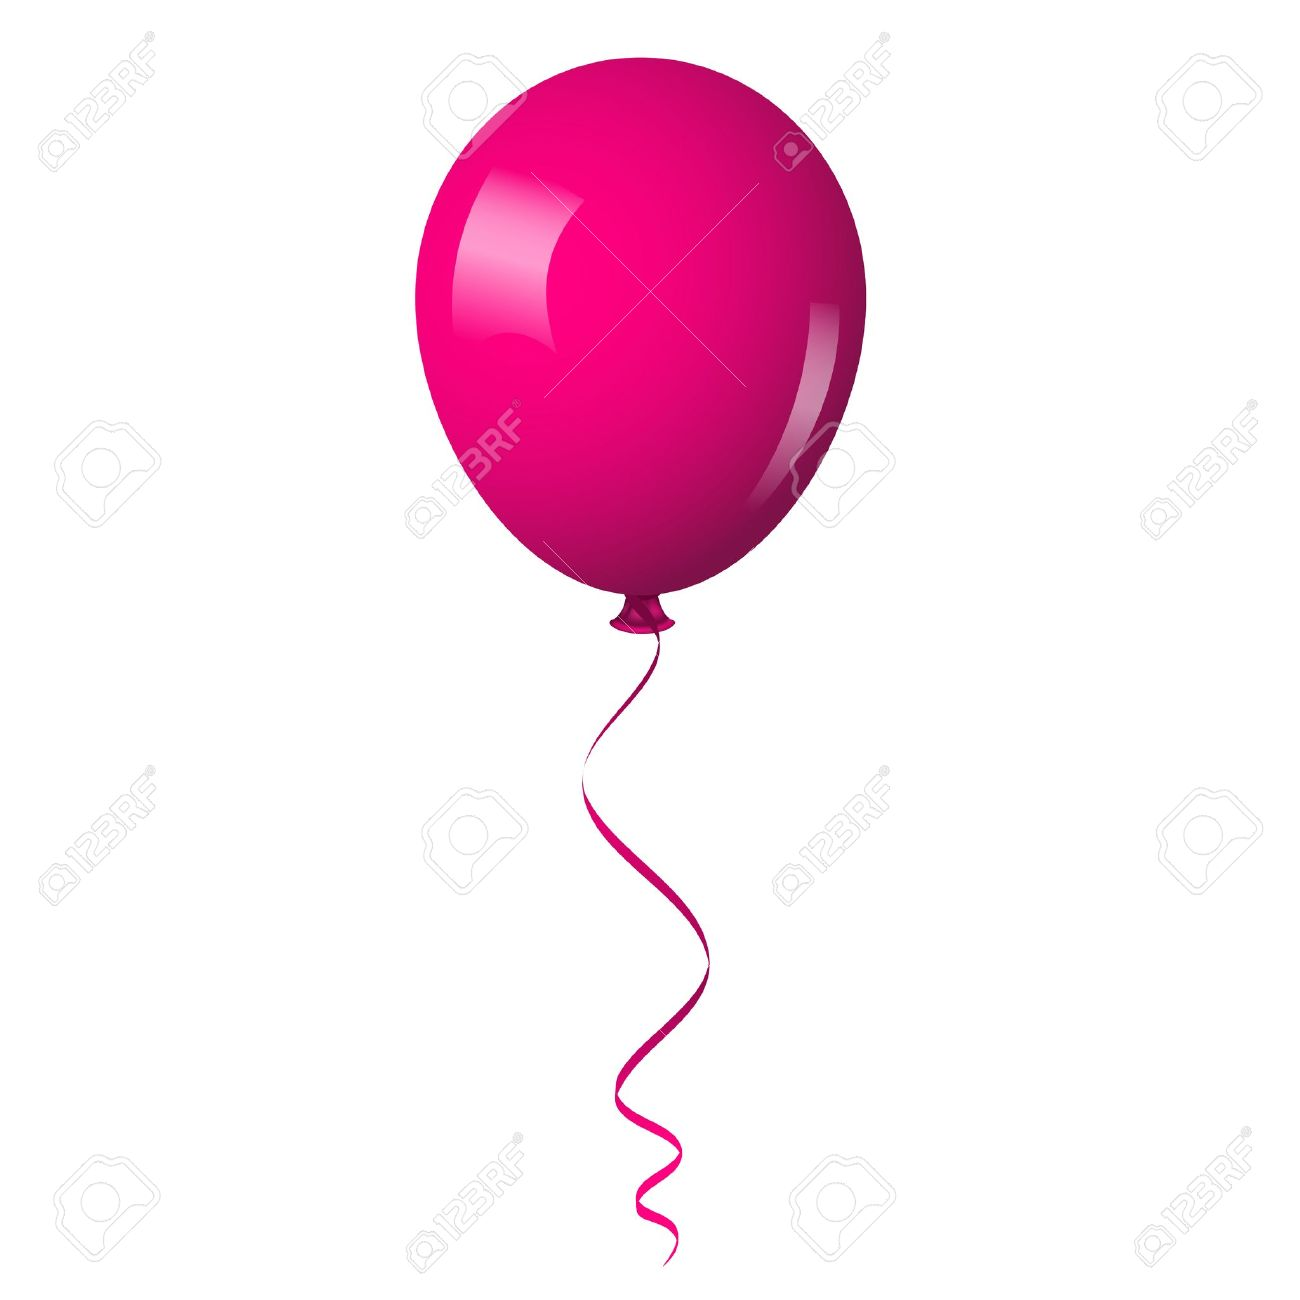 hight resolution of 1300x1300 pink balloon clipart